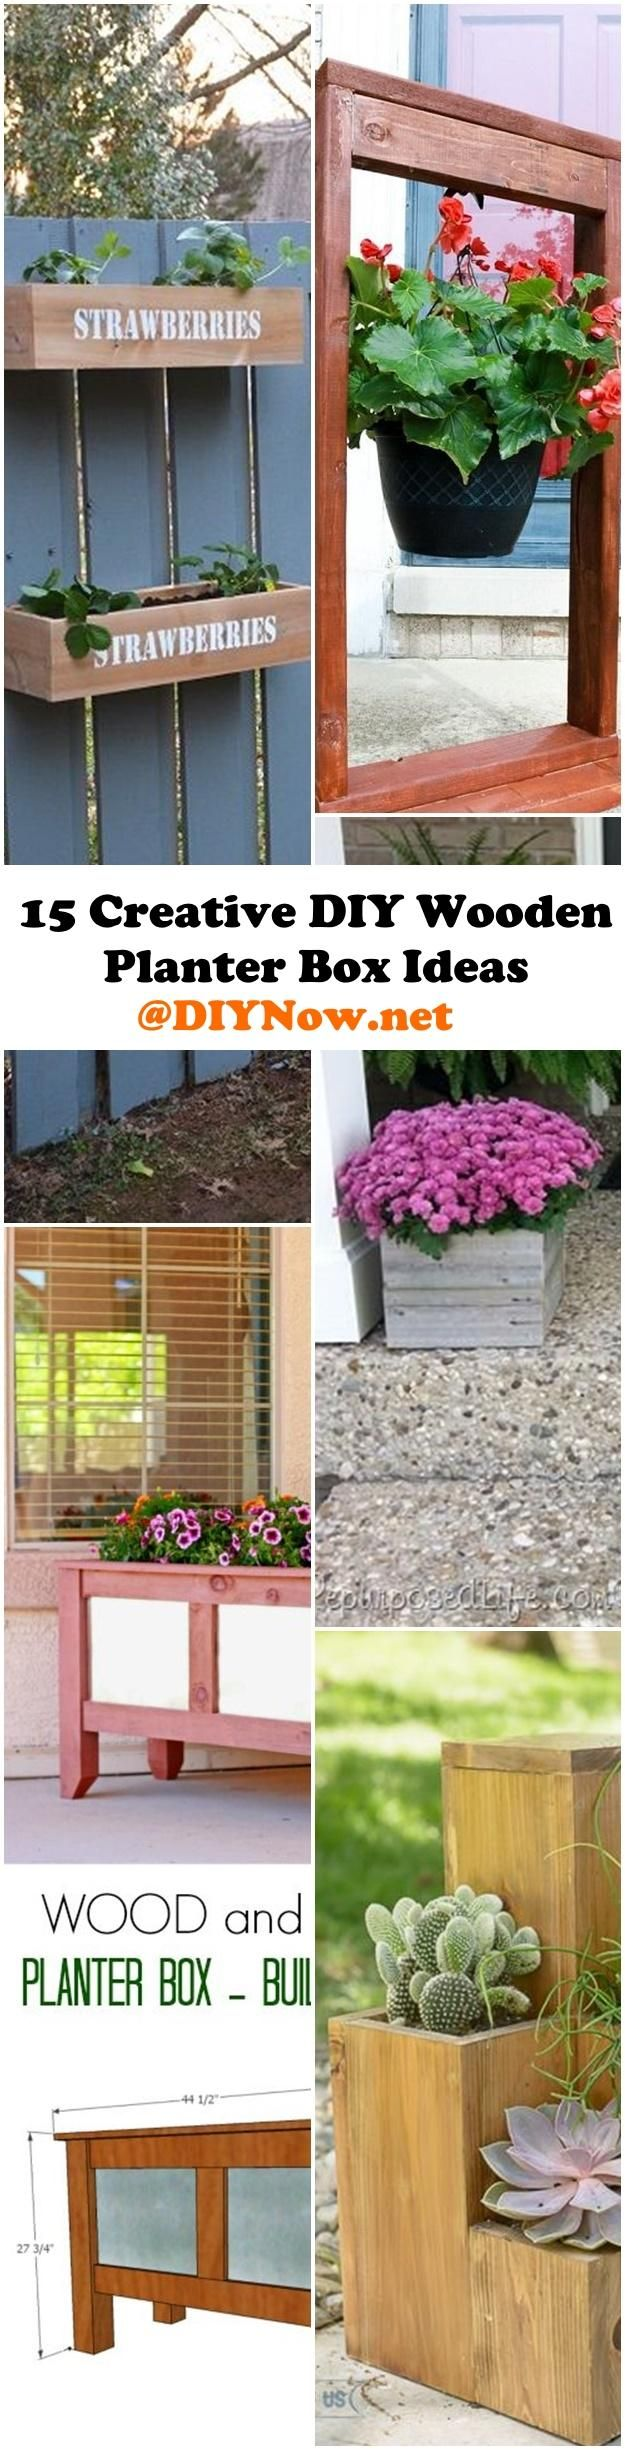 25 best ideas about Diy wooden planters